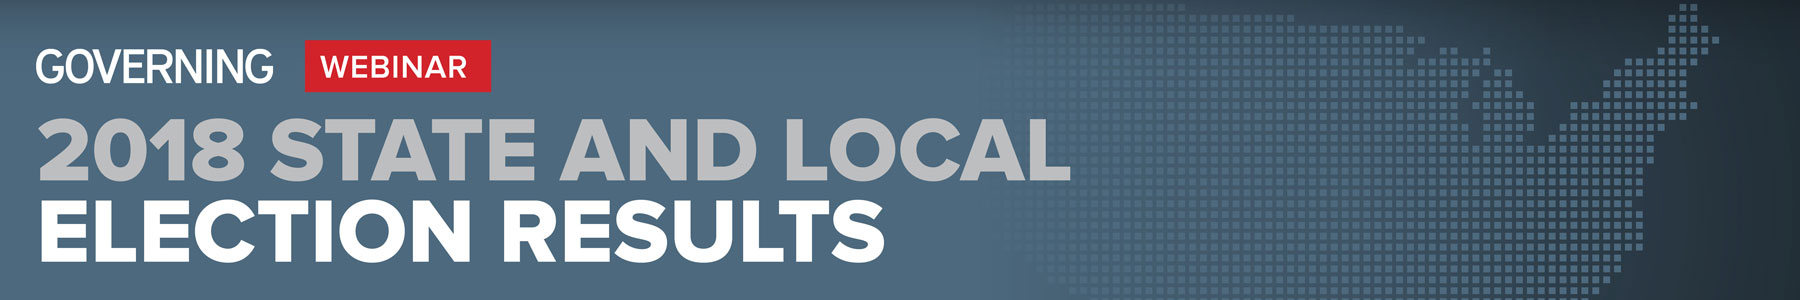 2018 State and Local Election Results